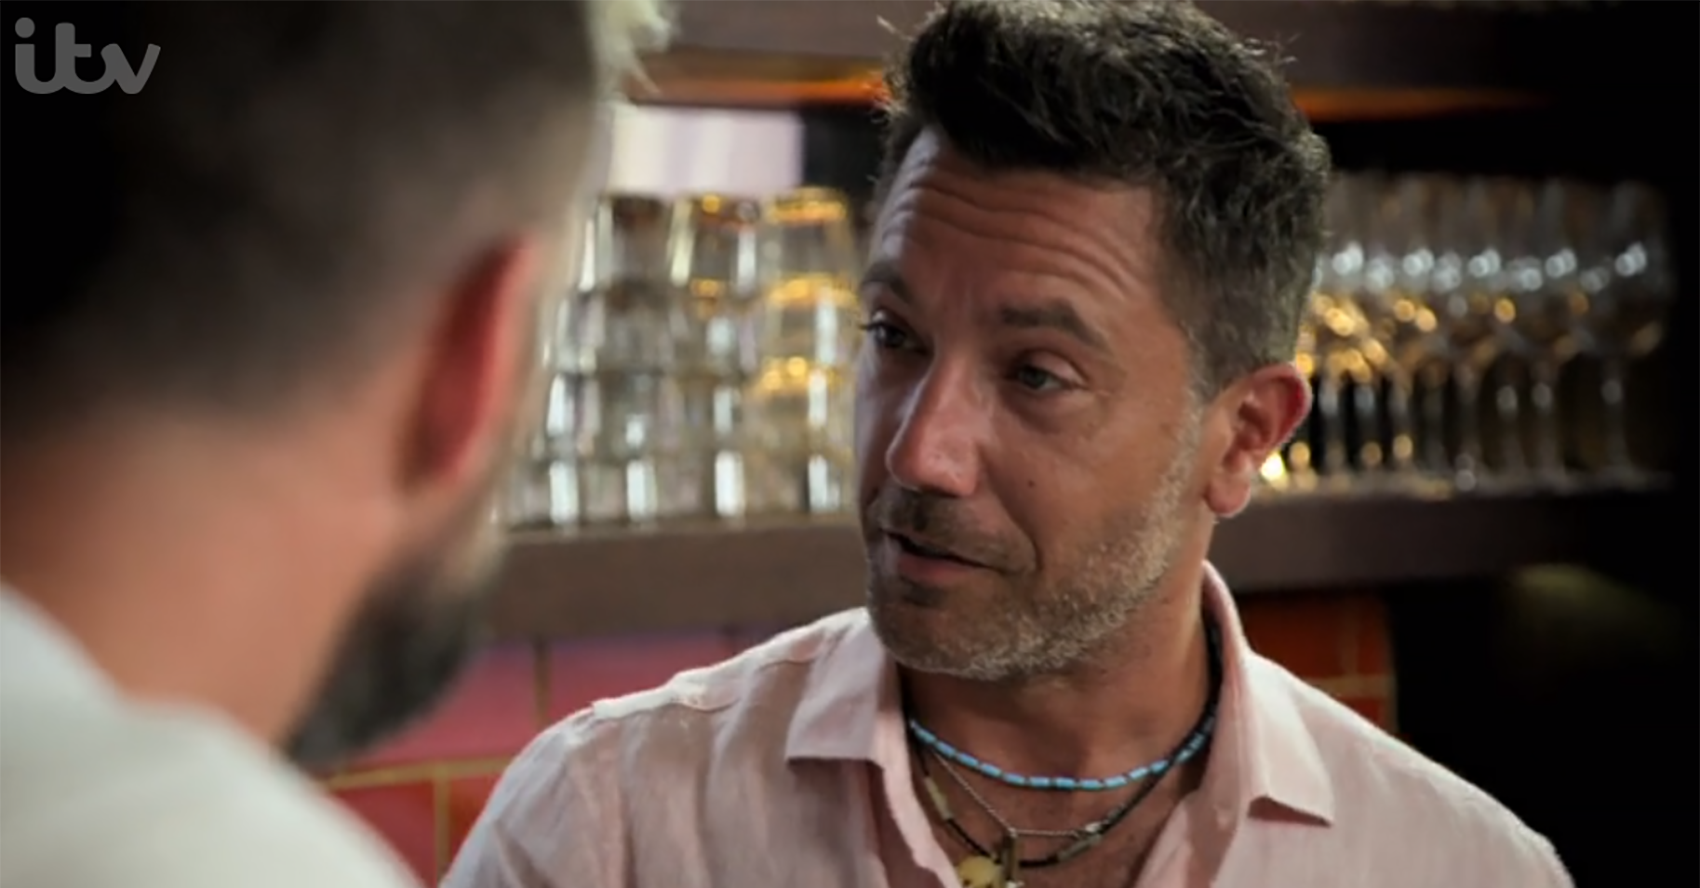 Viewers divided over 'irresponsible' scenes of Gino D'Acampo 'getting high'